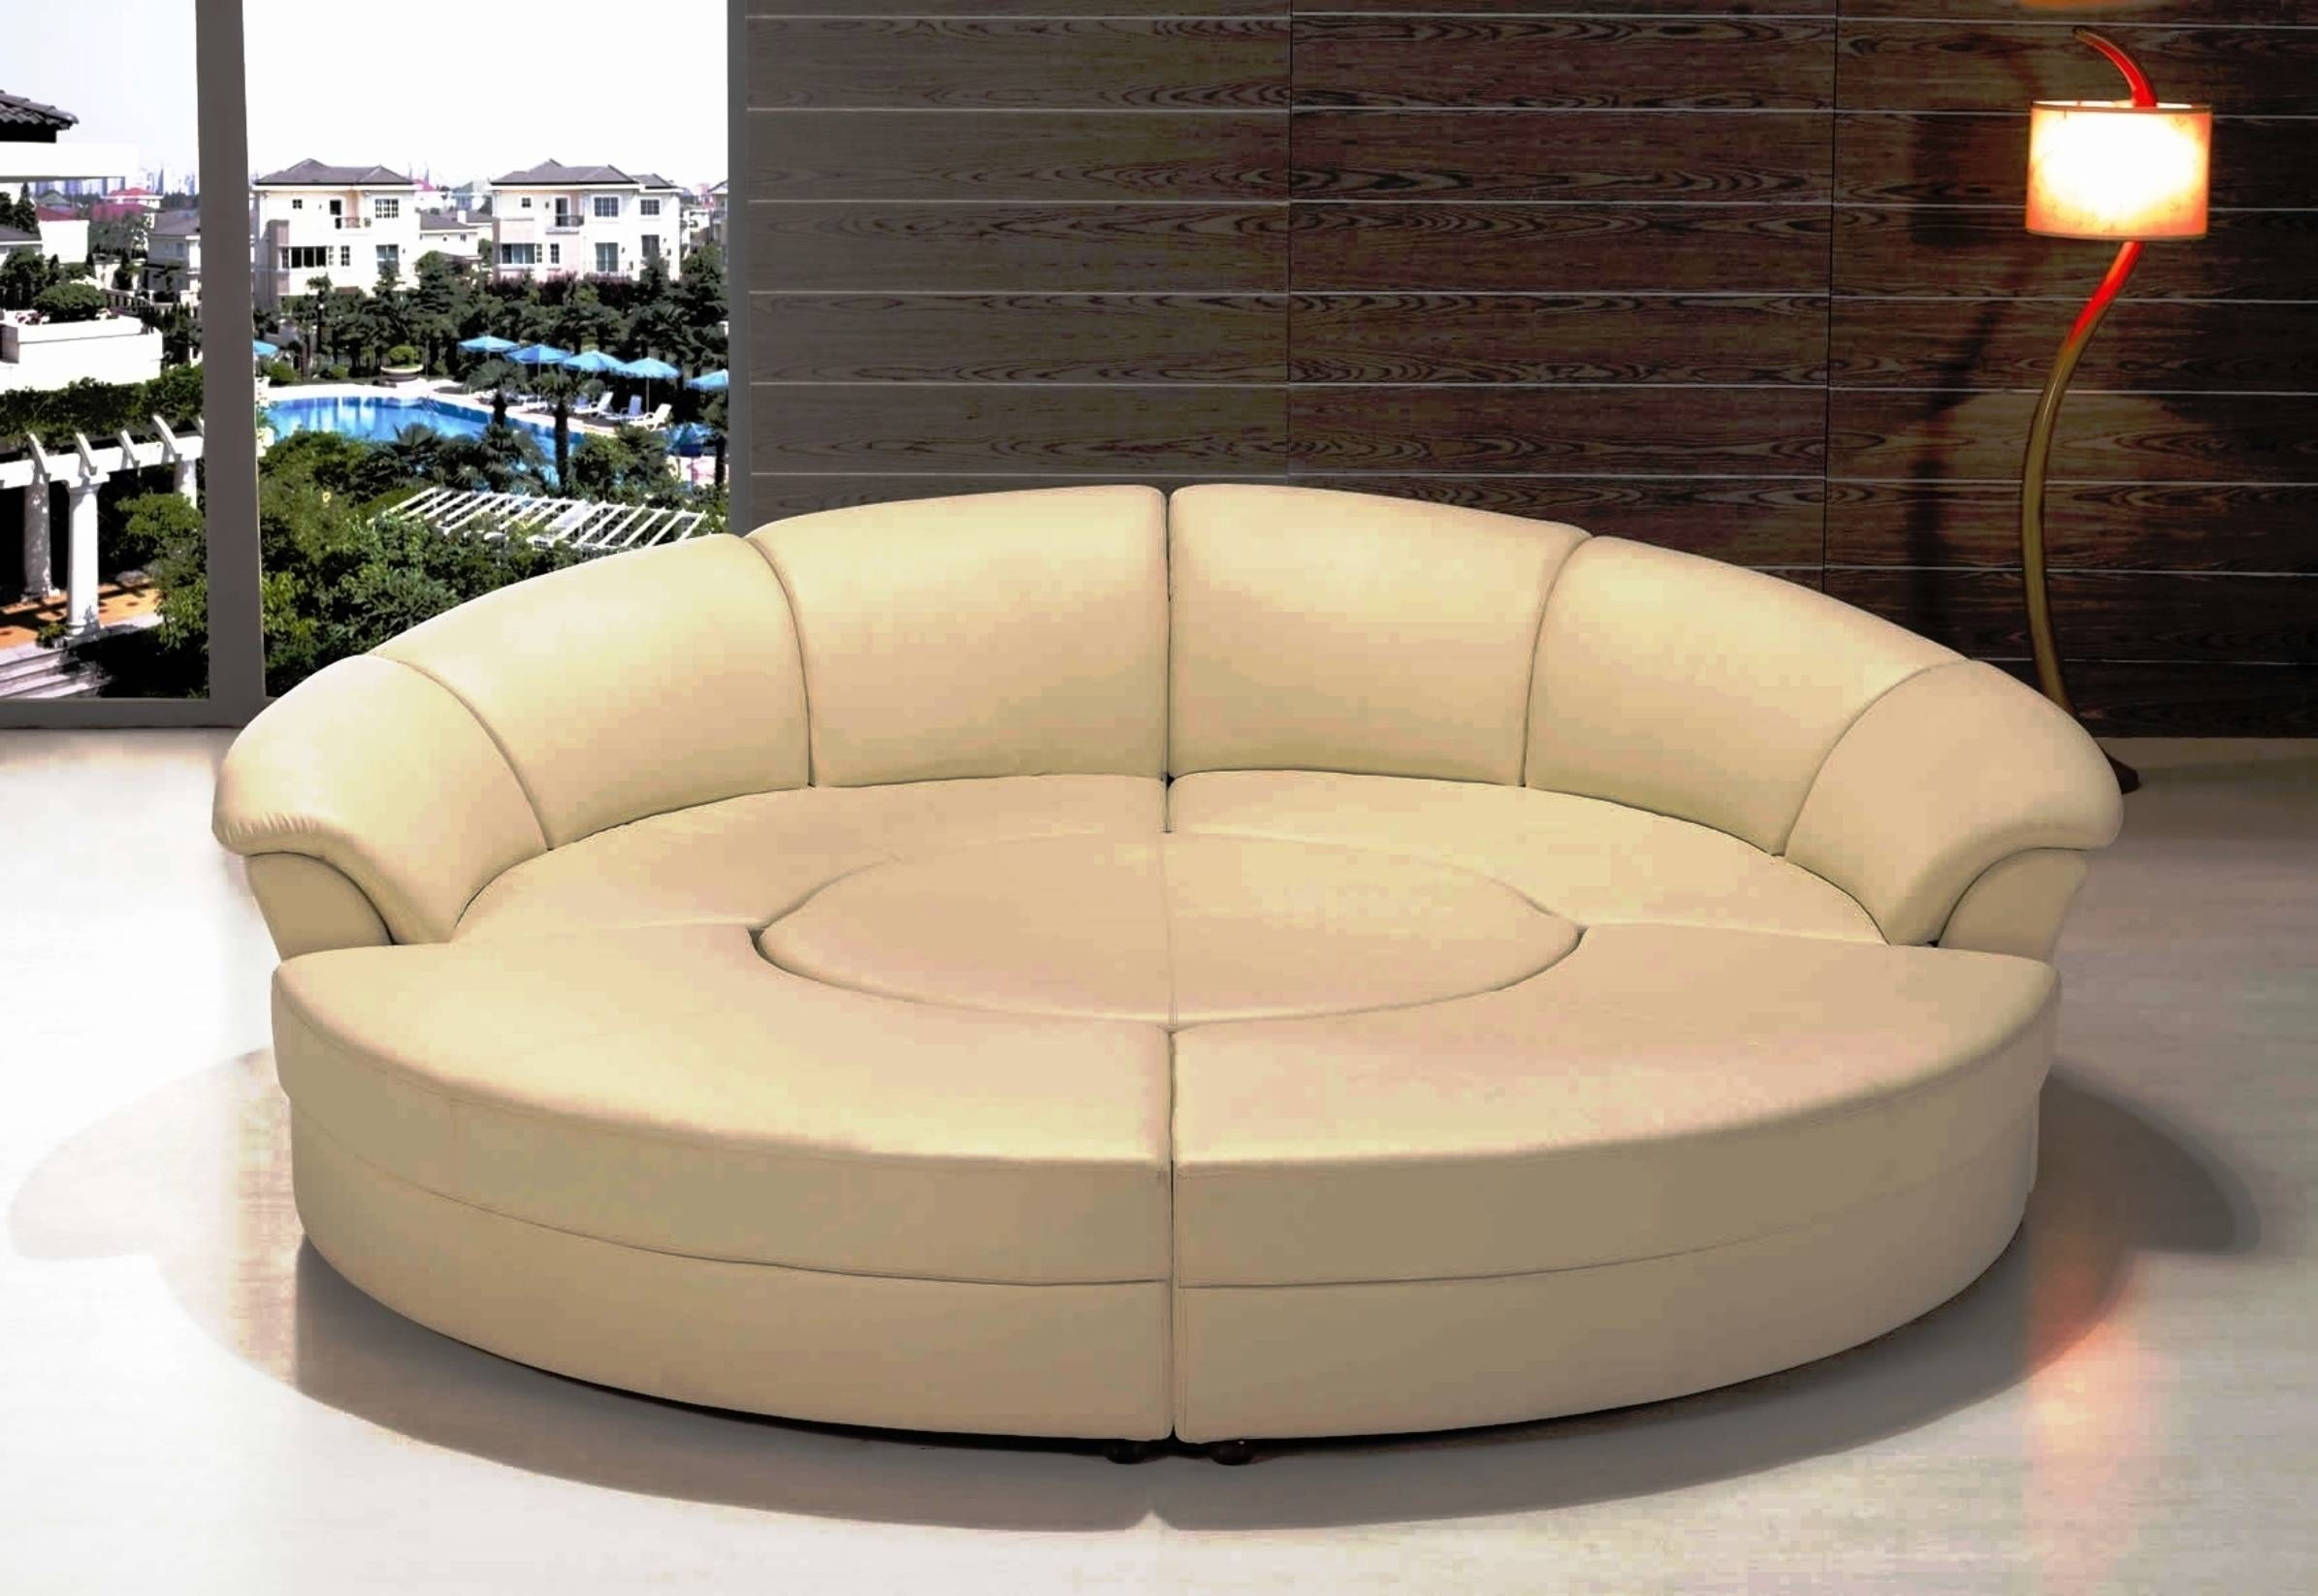 Exellent Round Sectional Sofa Bed Intended Decorating Ideas regarding Semi Round Sectional Sofas (Image 3 of 15)